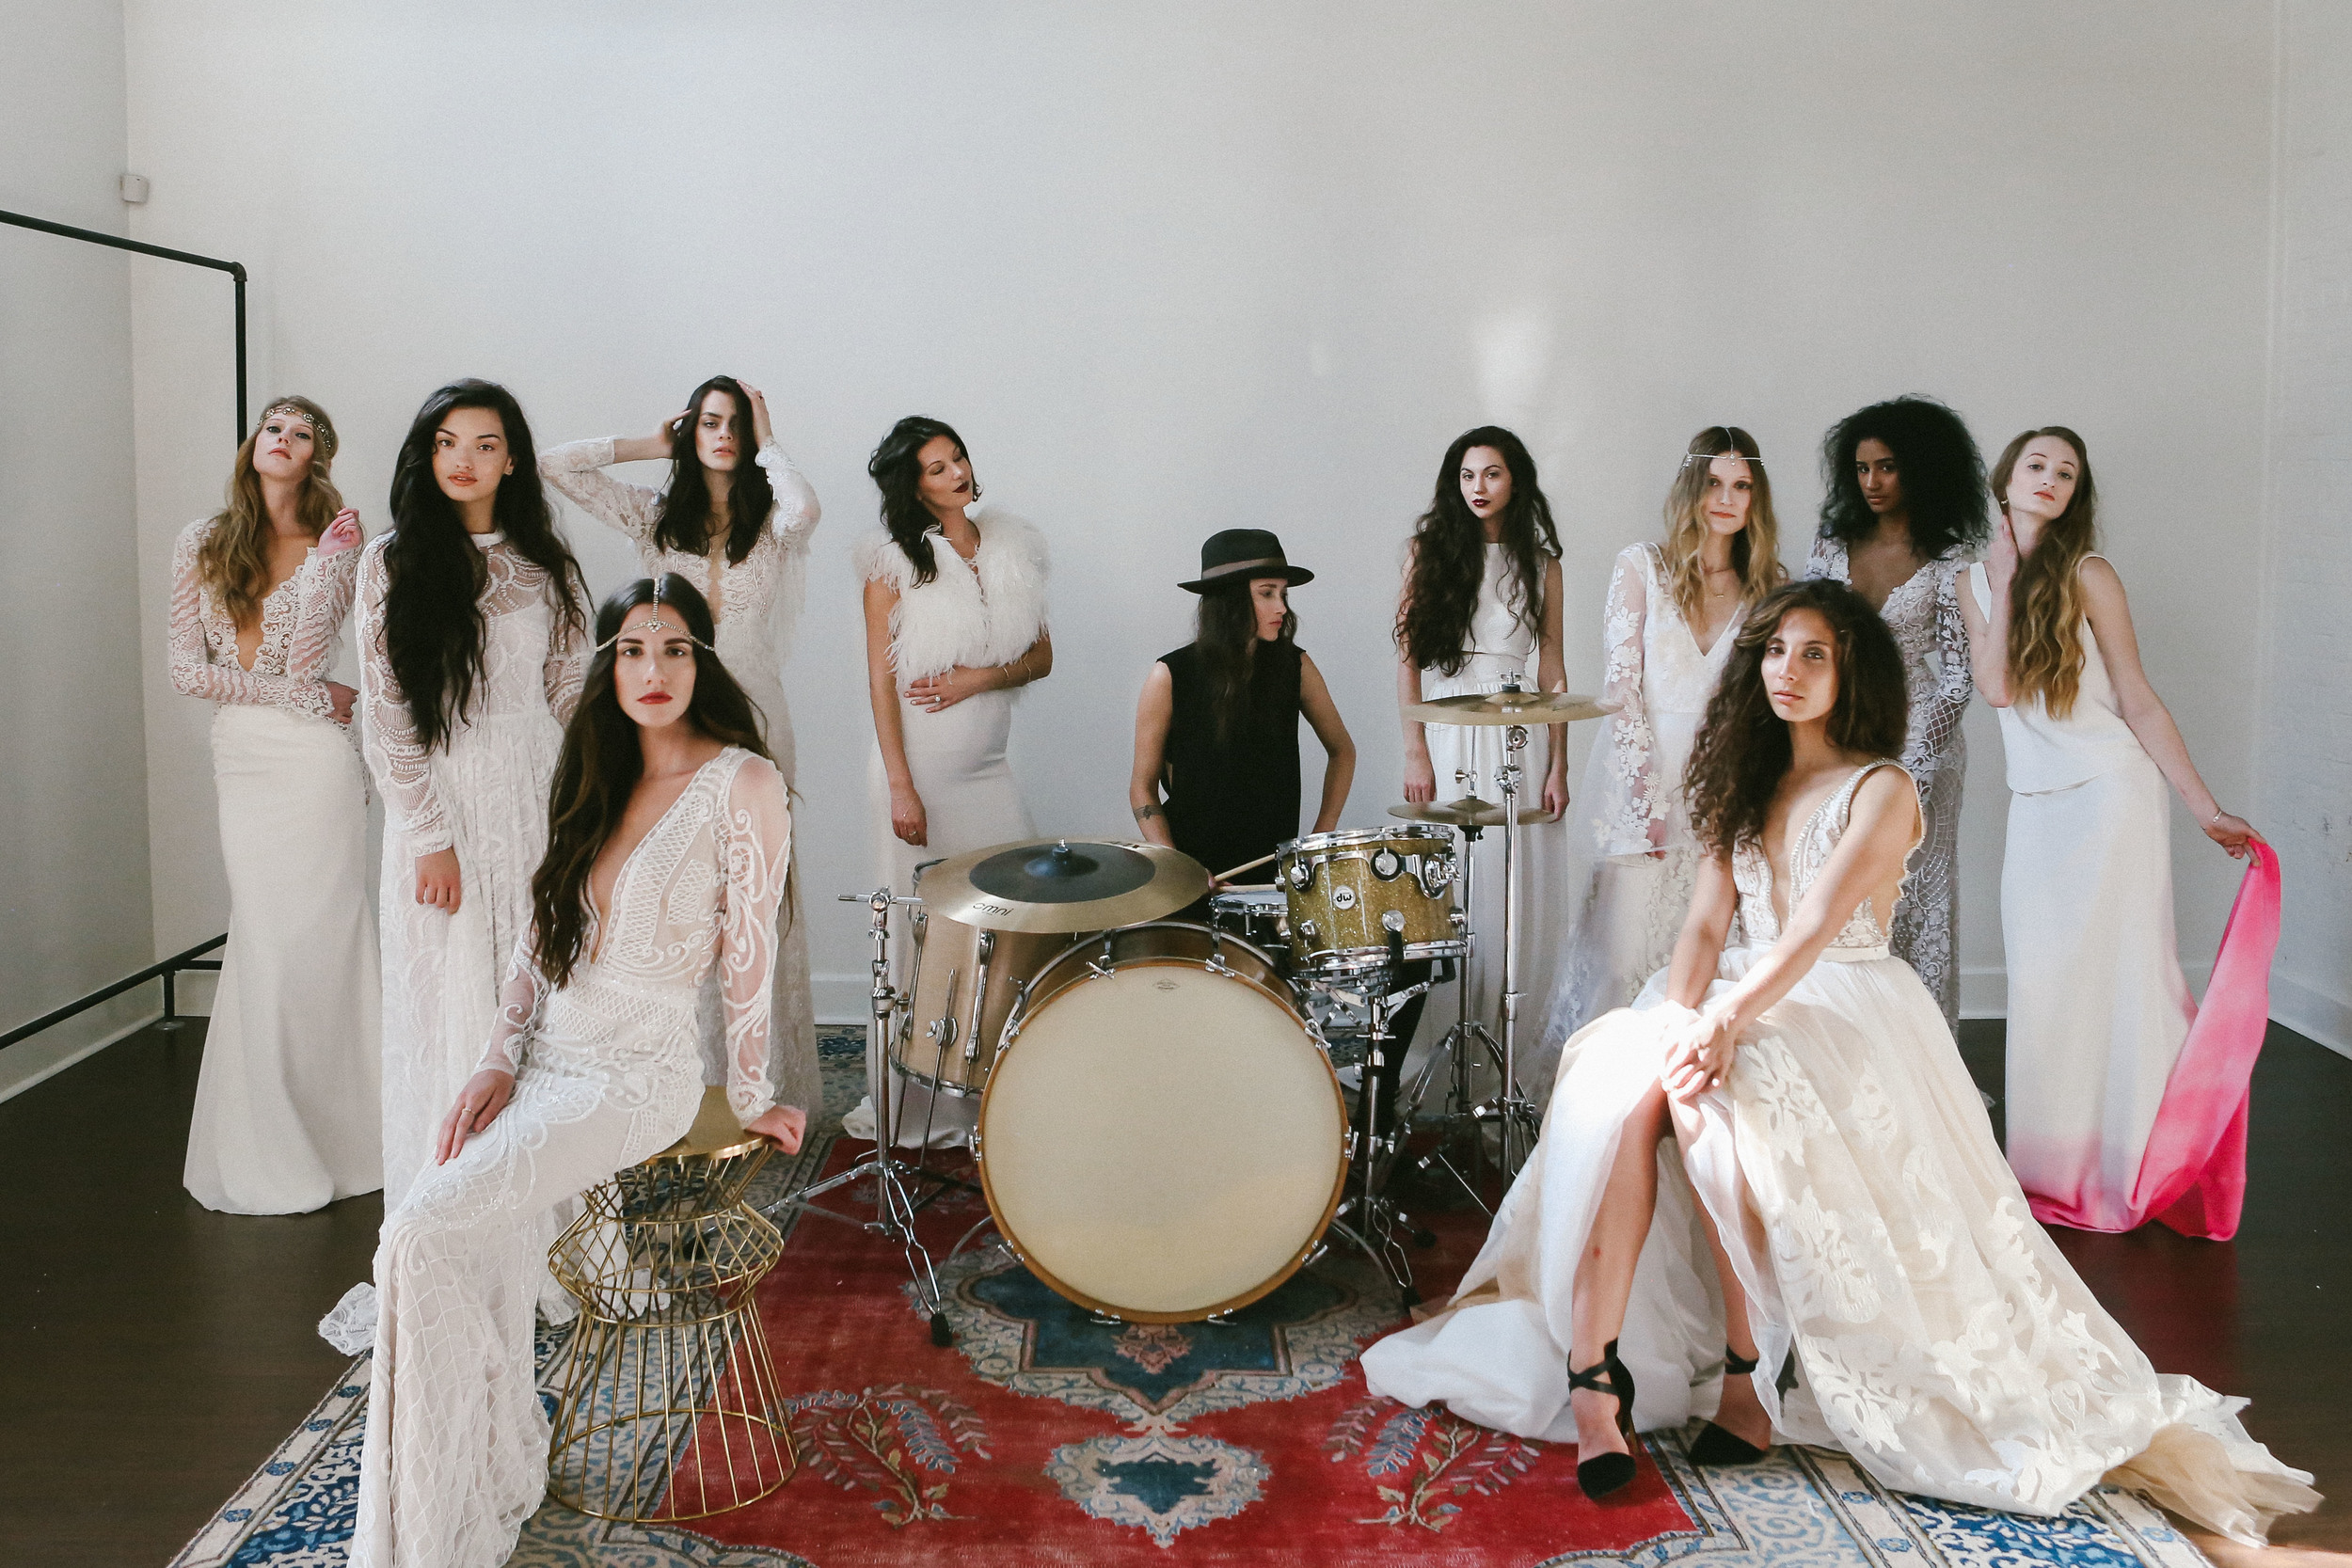 finery-boutique-huntsivlle-alabama-bohemian-wedding-shop-odylyne-the-ceremony-yolan-cris-bride-bridal-yaki-ravid-berta-calla-blanche-lookbook-cool-nashville-tenessee-rock-roll-drums-katie-herron